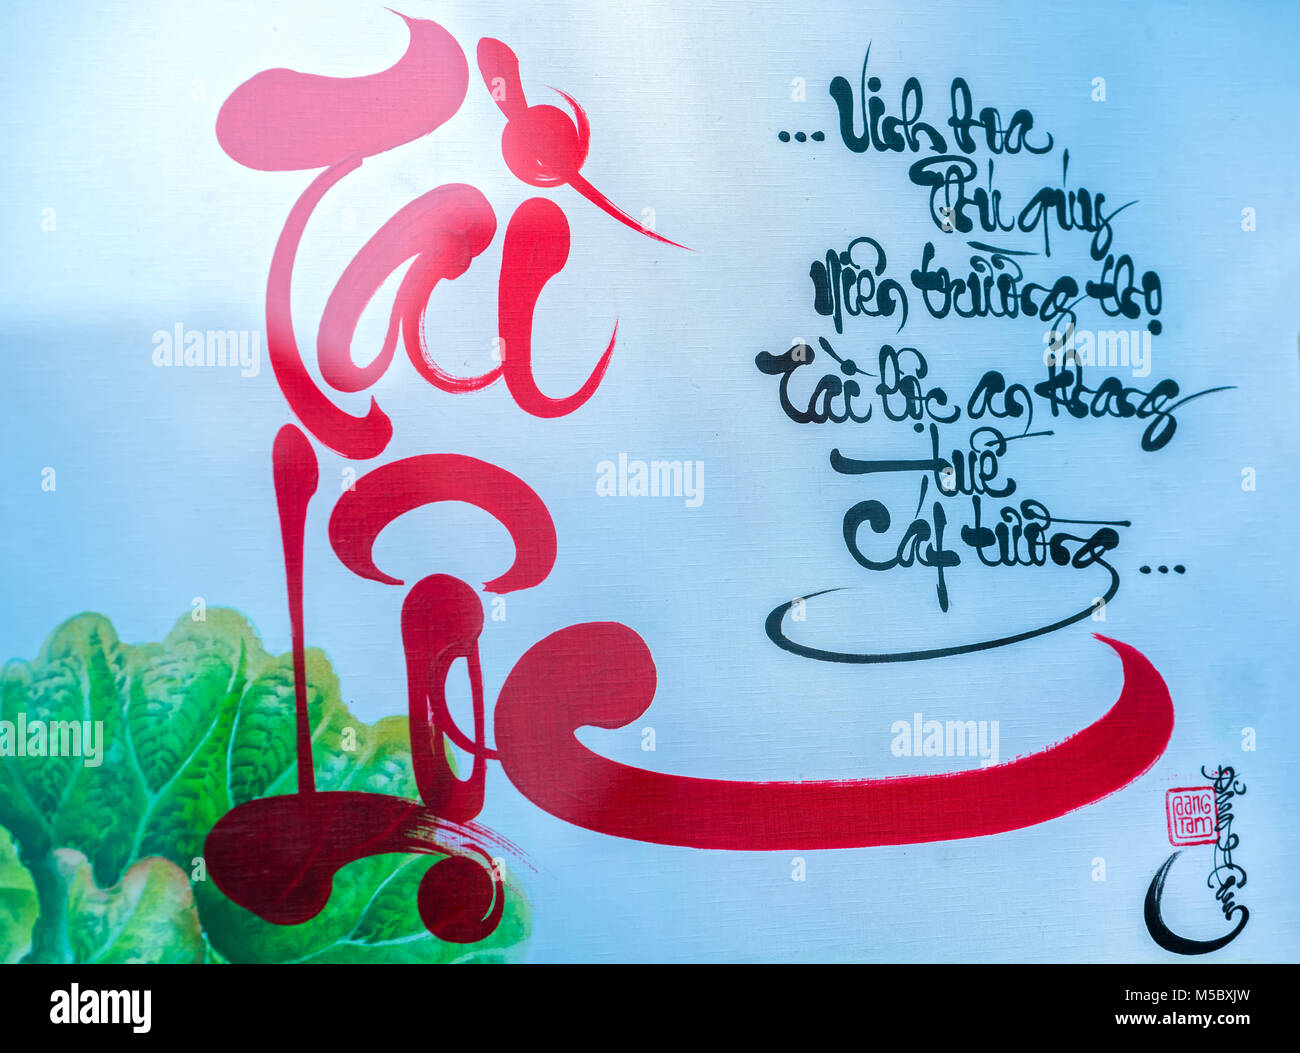 Lunar New Year Calligraphy decorated with text 'Merit, fortune, longevity' in Vietnamese meaning who owns - Stock Image